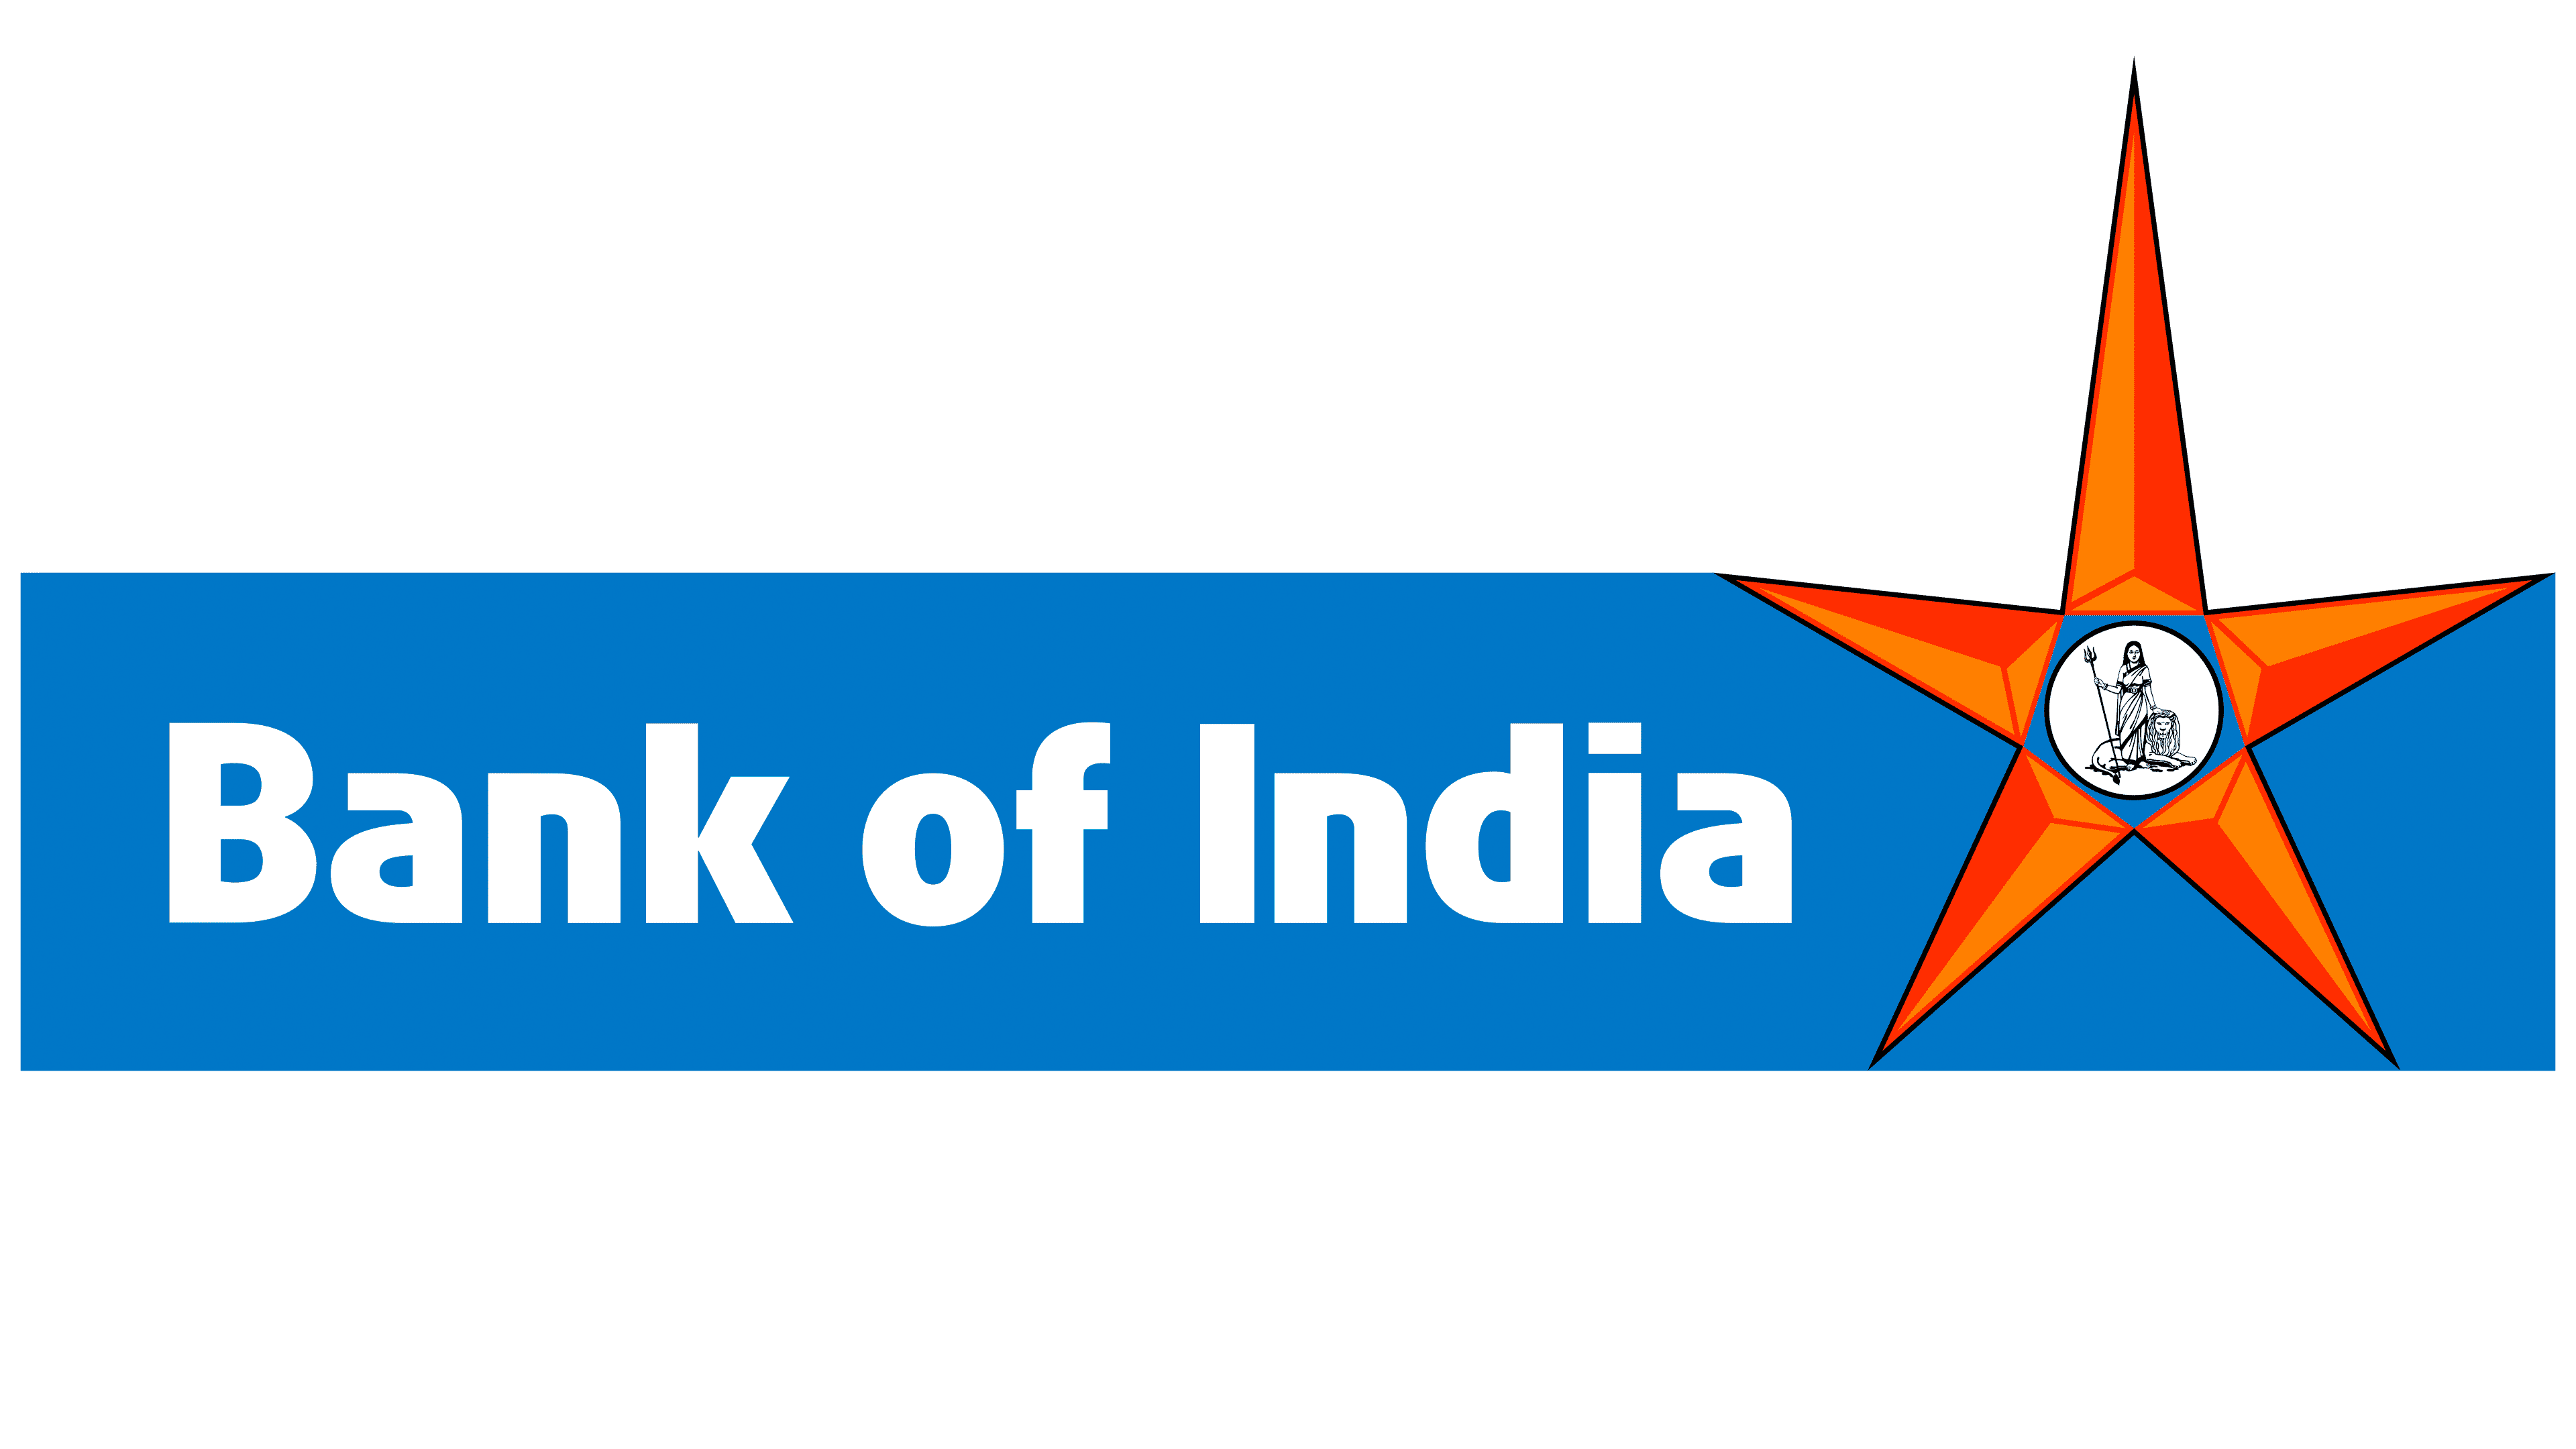 Bank of India Loan on Credit Card